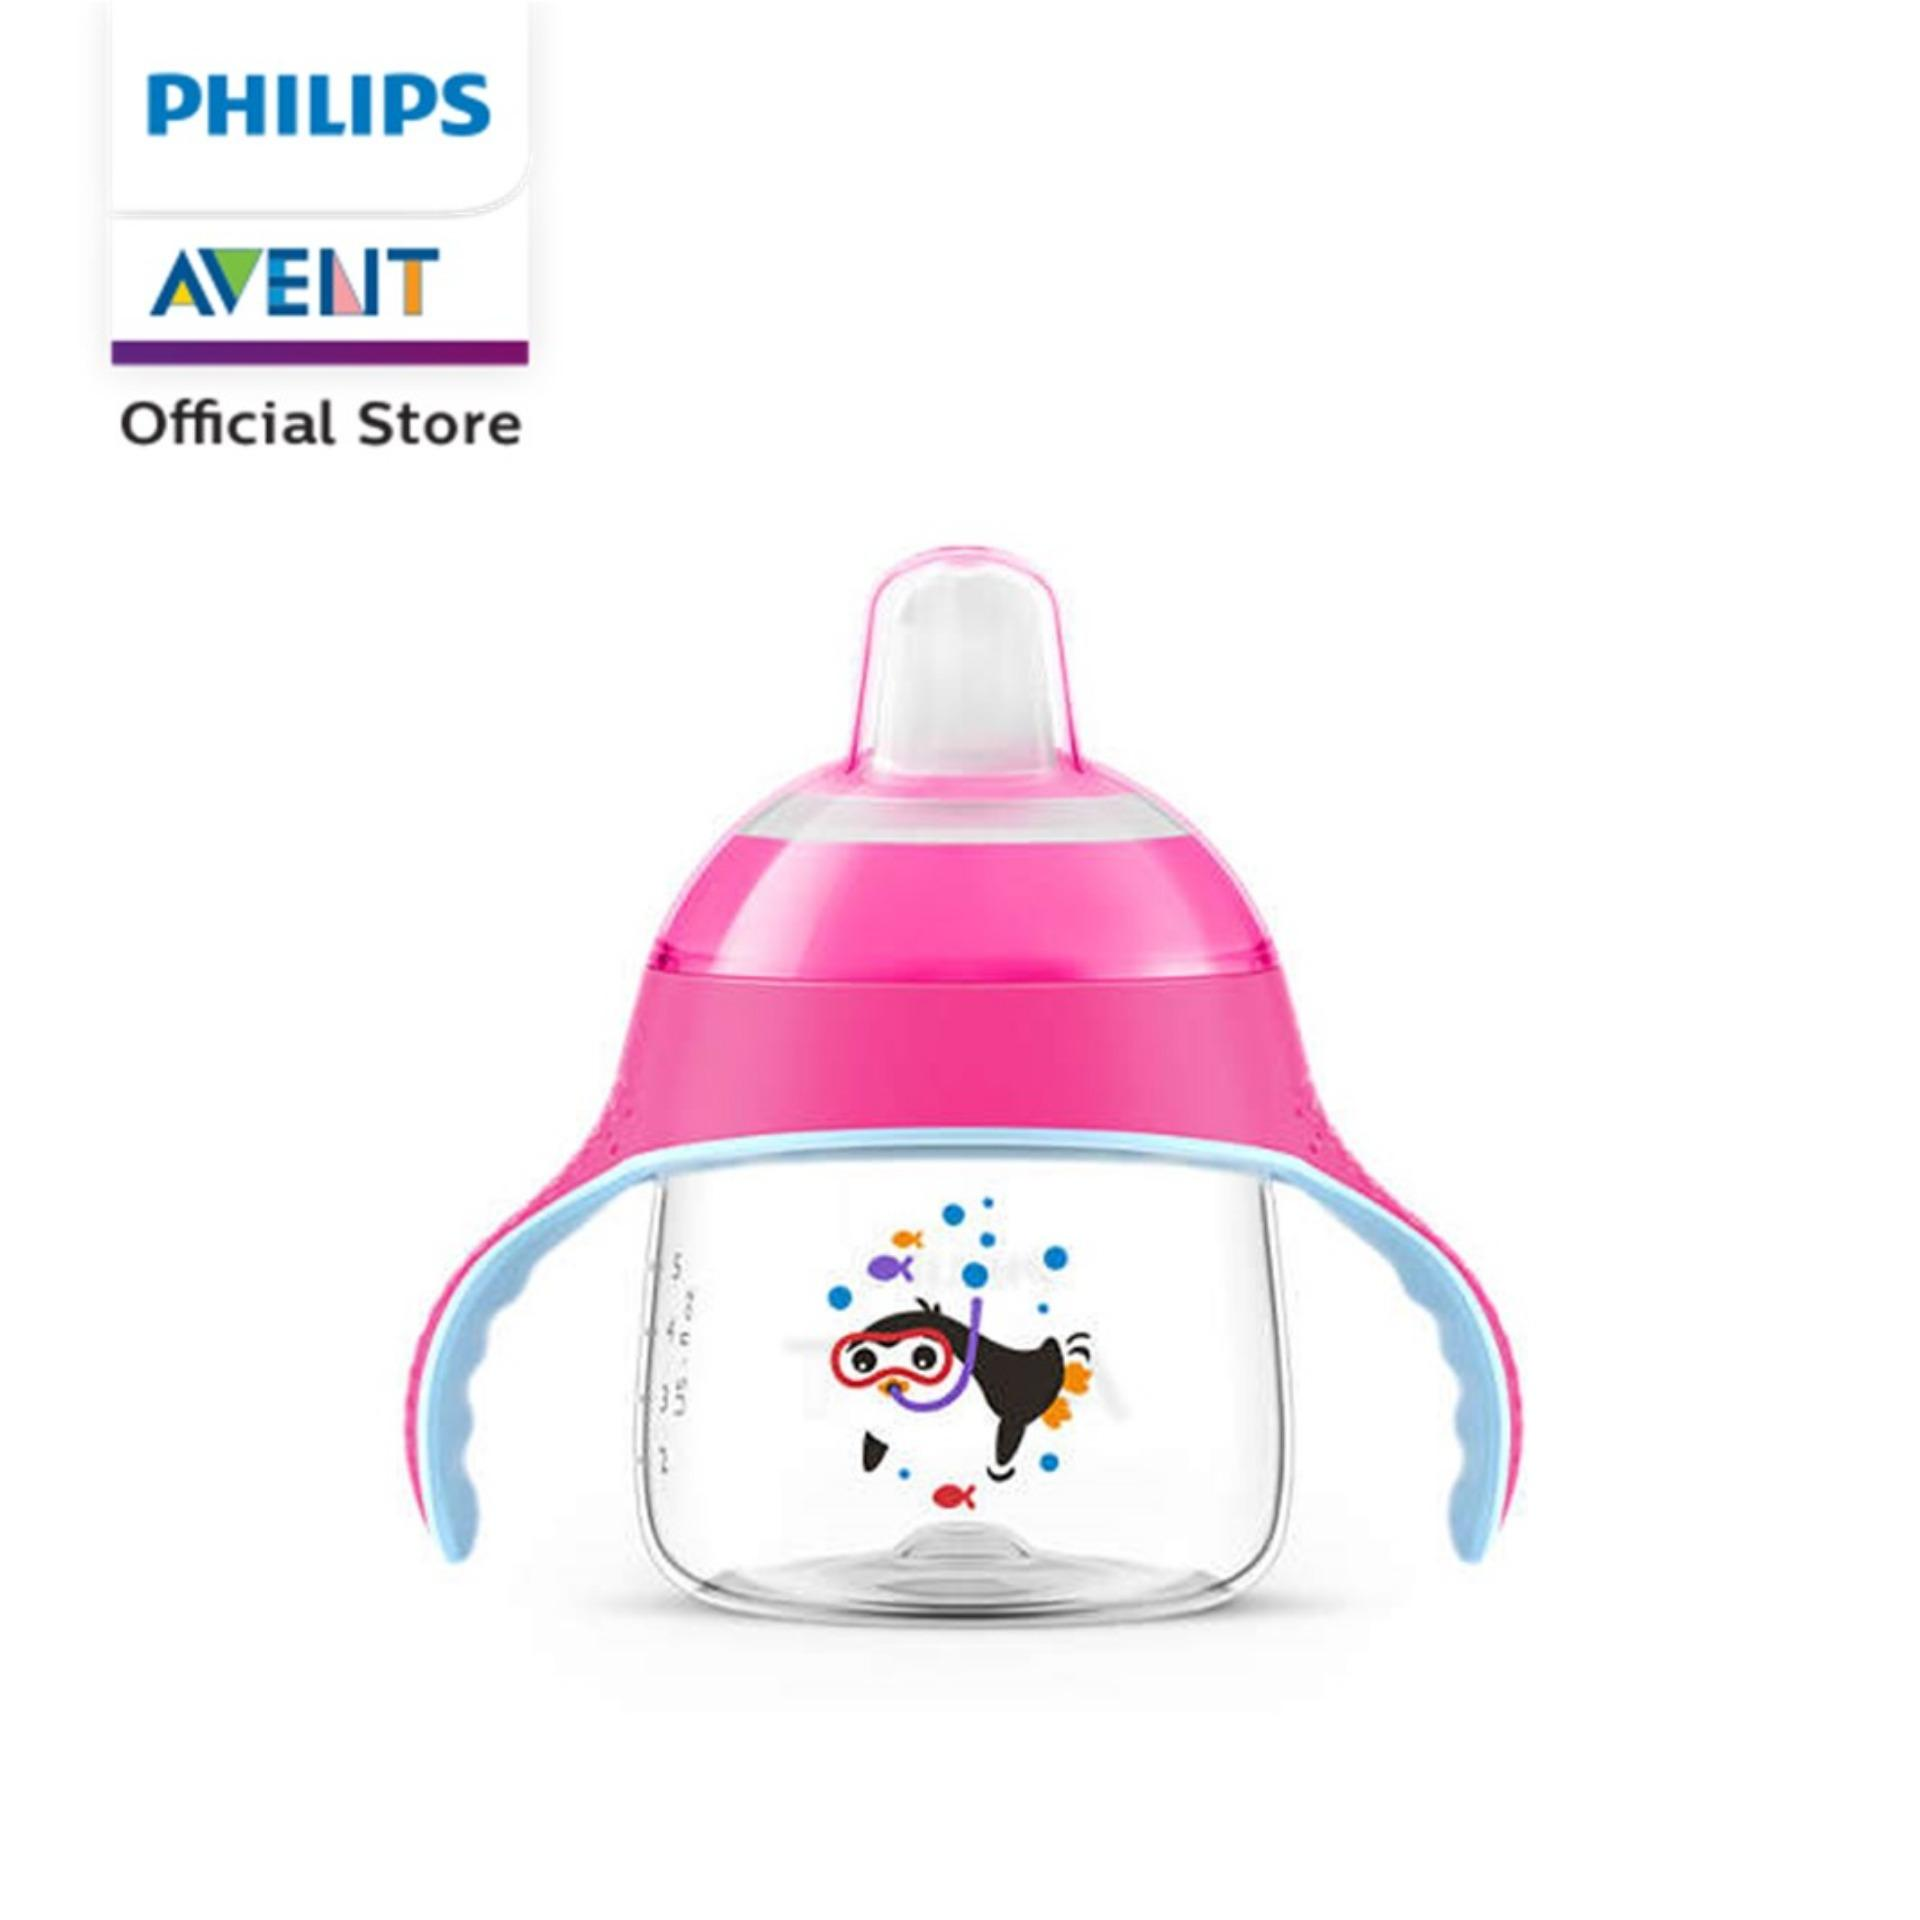 Philips Avent Spout Cup 200ml (pink) By Philips Avent Official Store.